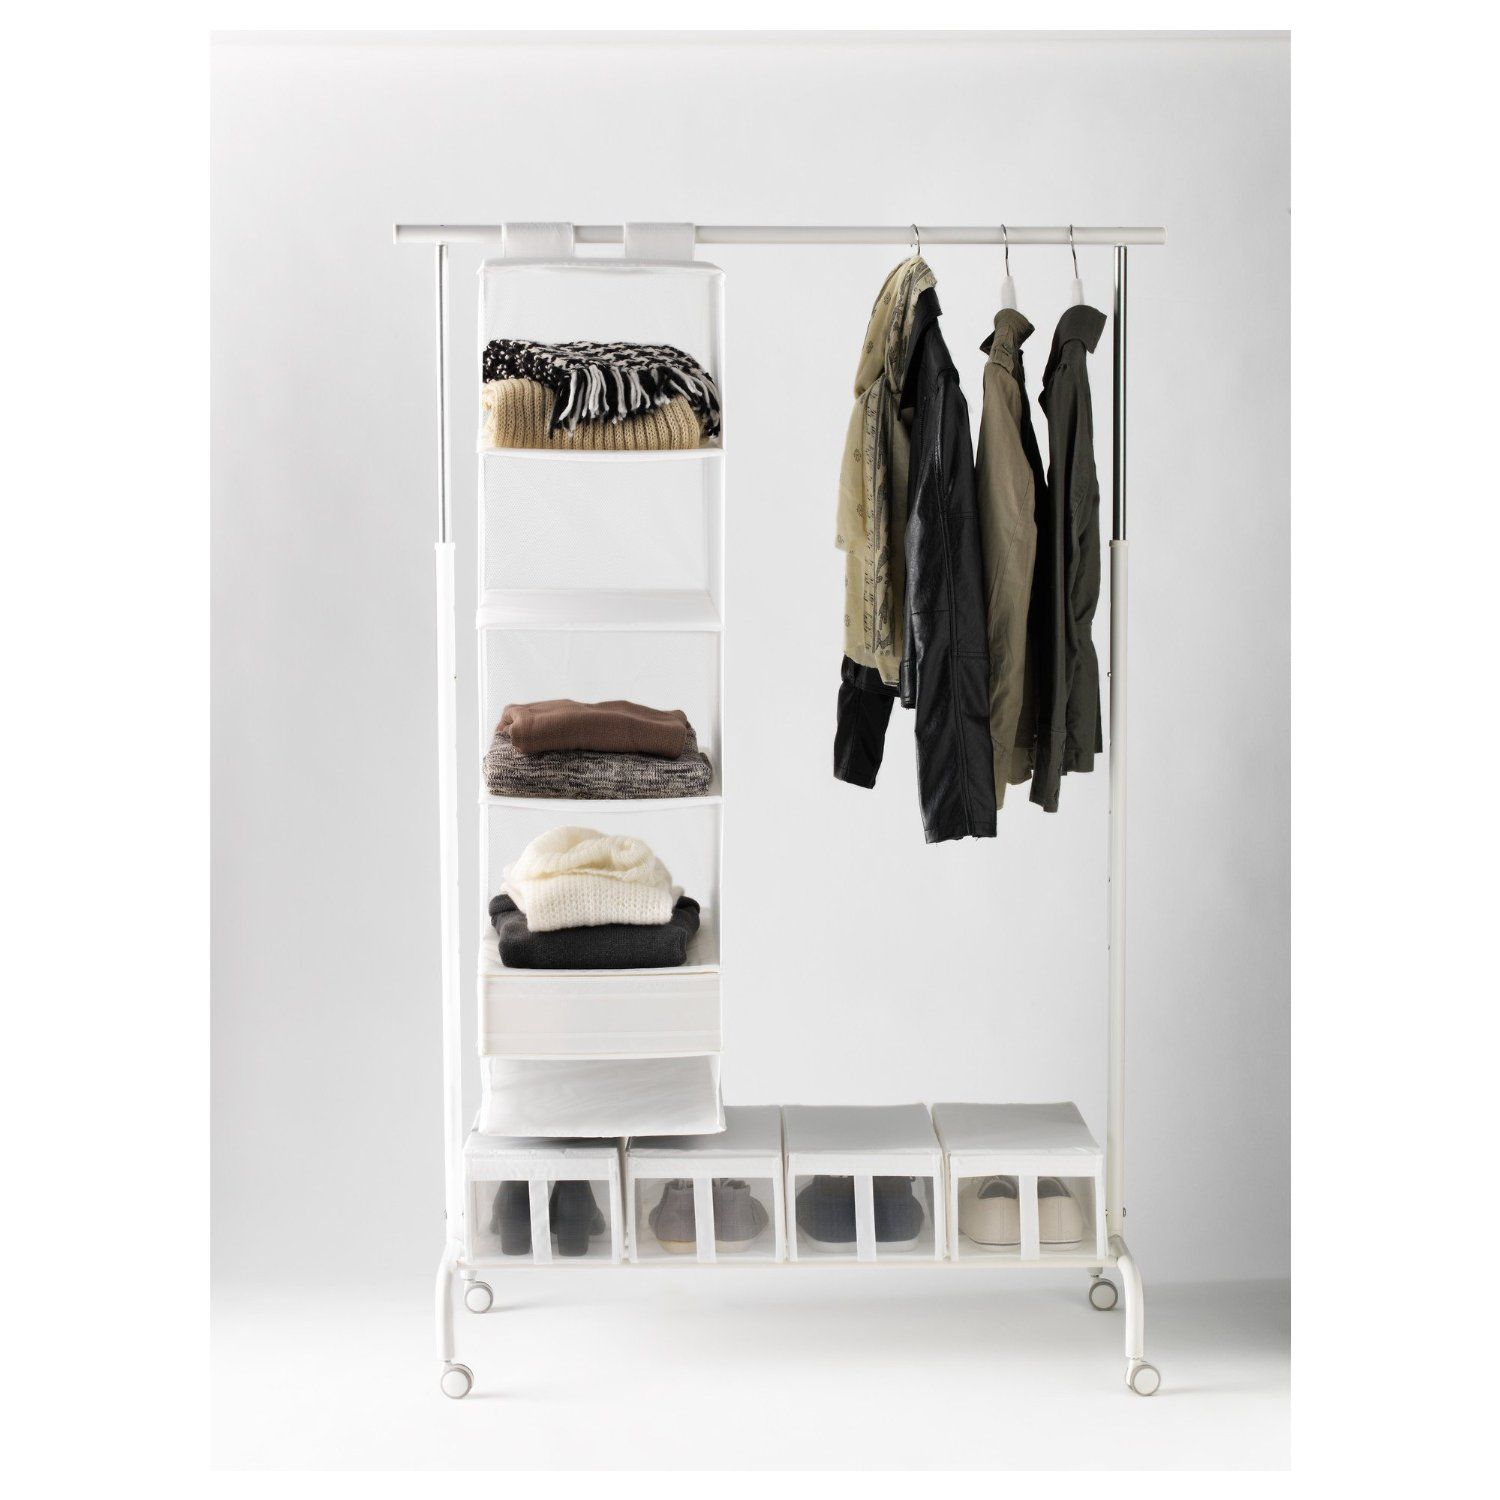 Uncategorized The Clothes Rack amazon com ikea rigga clothes rack storage organization you can easily adjust the height to suit your needs as be locked in place at 6 fixed level